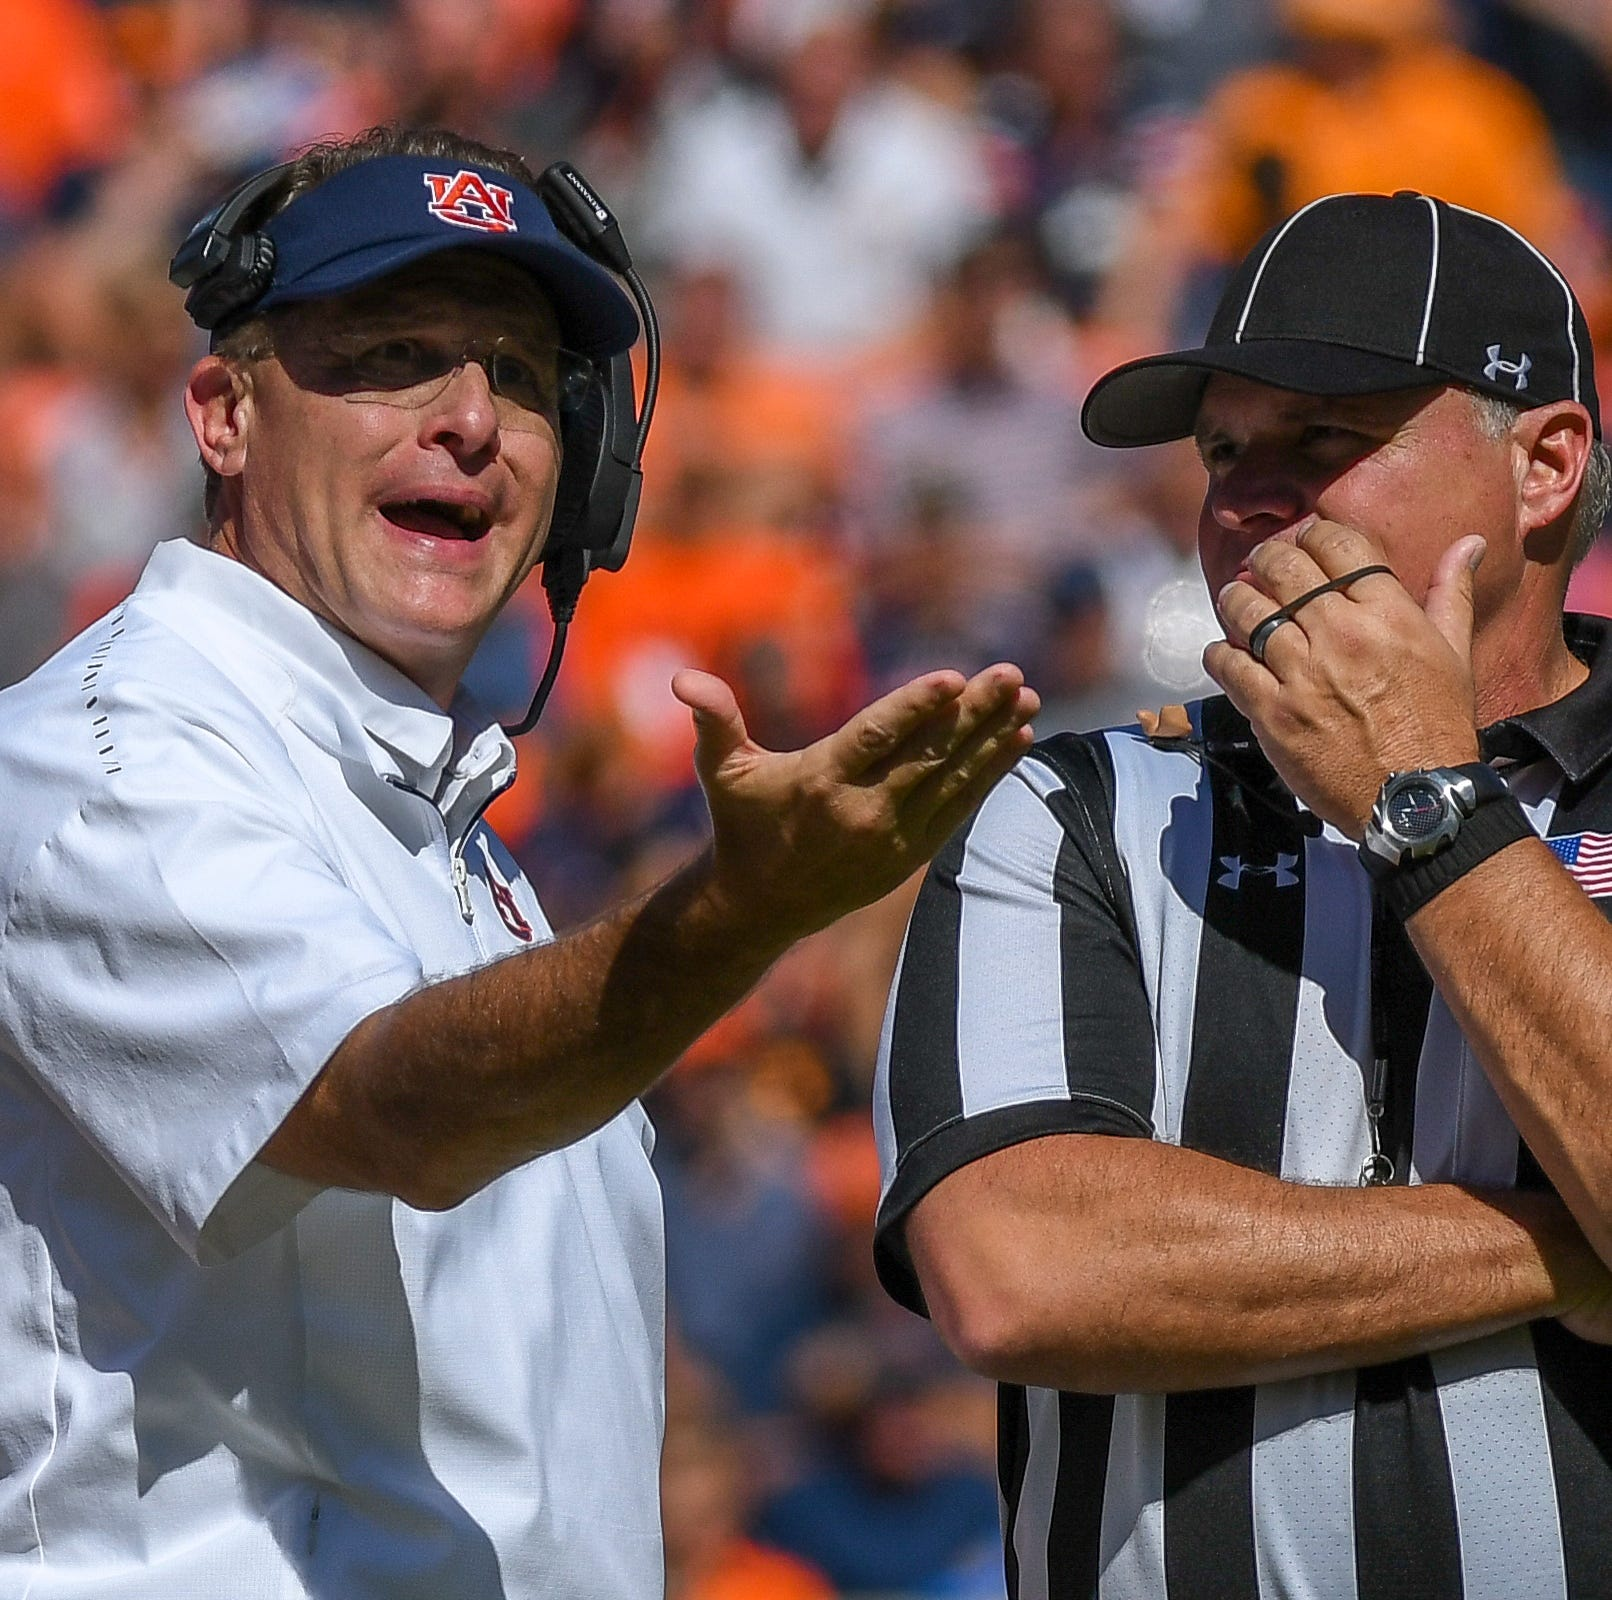 Malzahn's contract extension will plague Auburn one way or the other